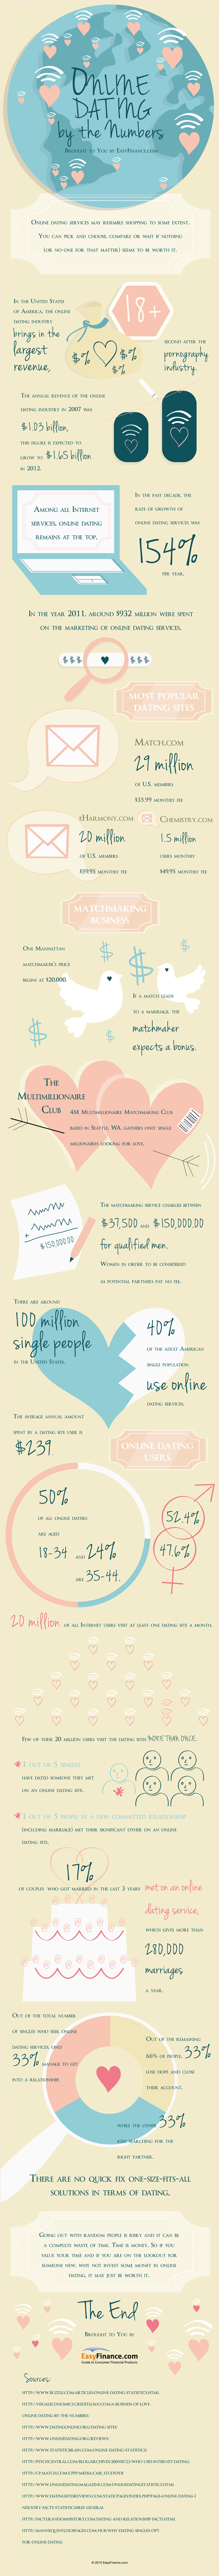 Is Prince Charming Online? (Infographic) 